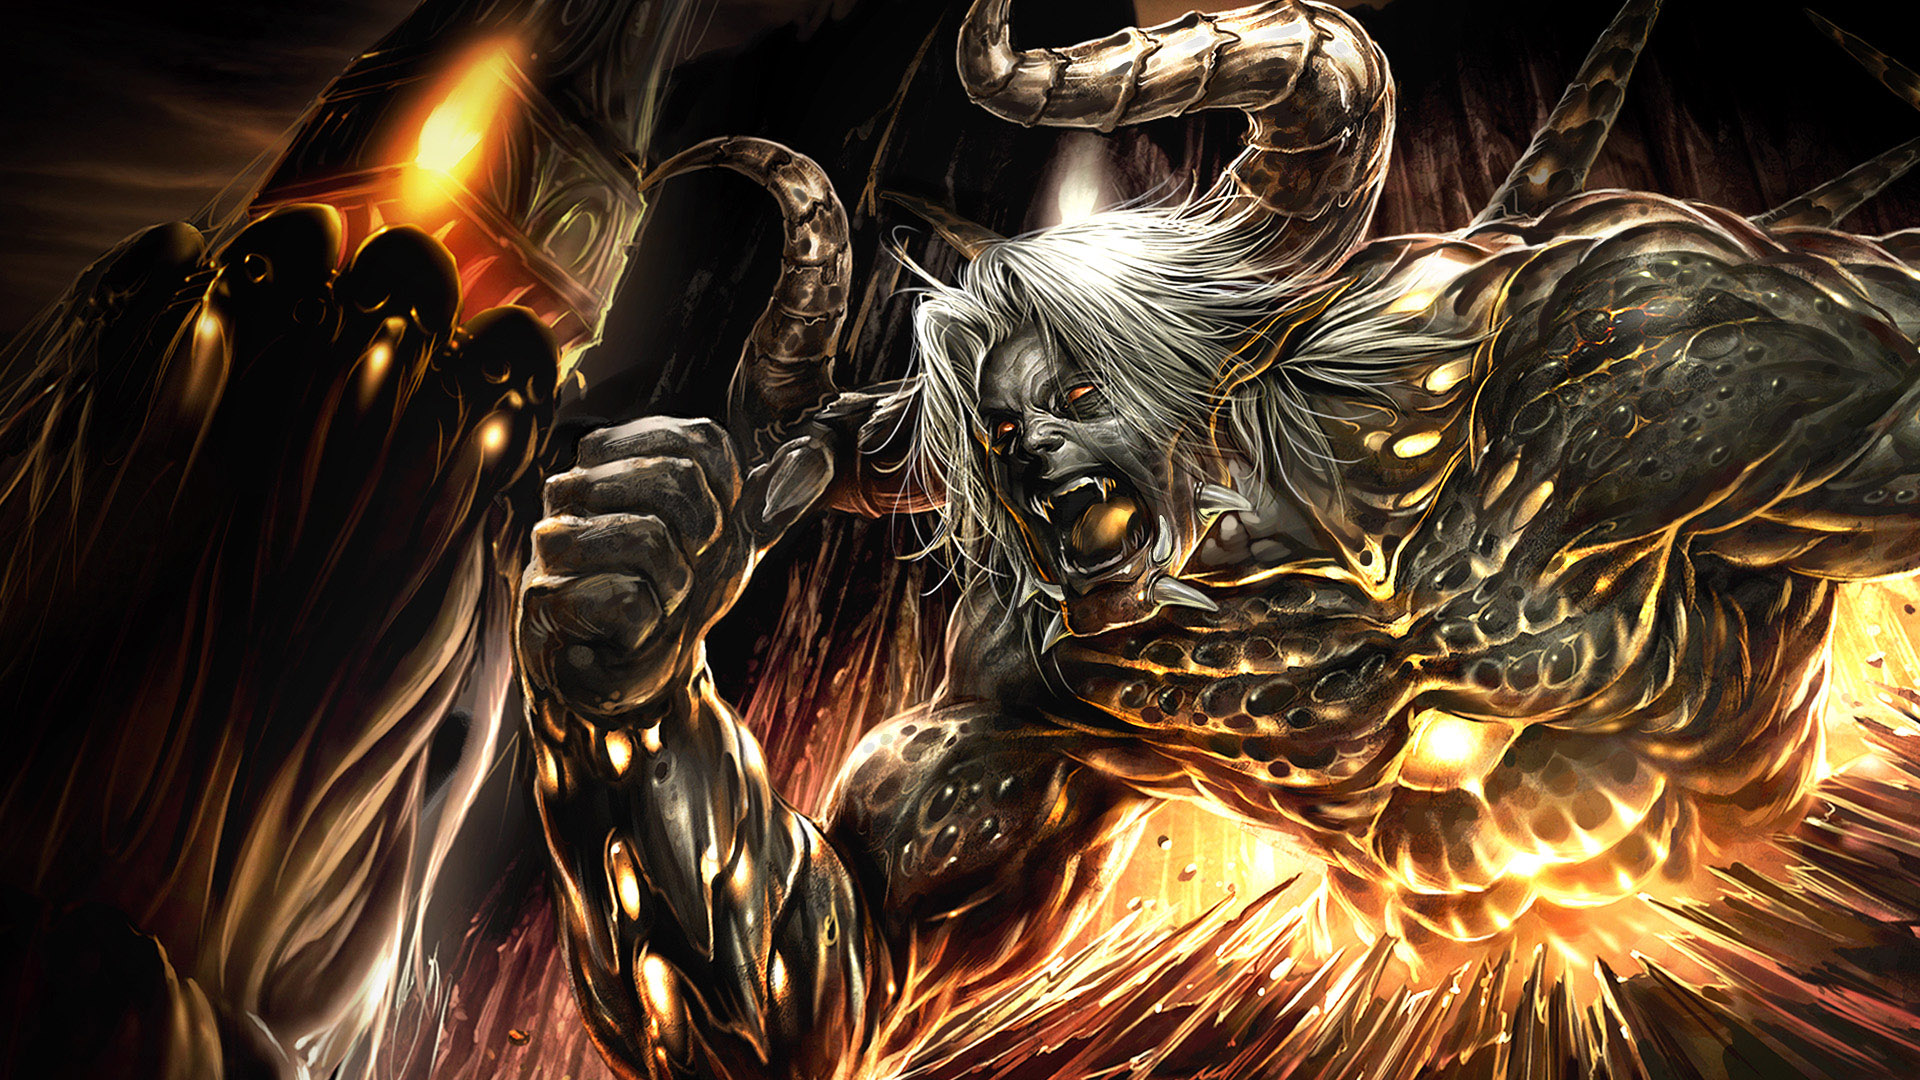 JJ DEMON WALLPAPERS FREE Wallpapers Background images 1920x1080